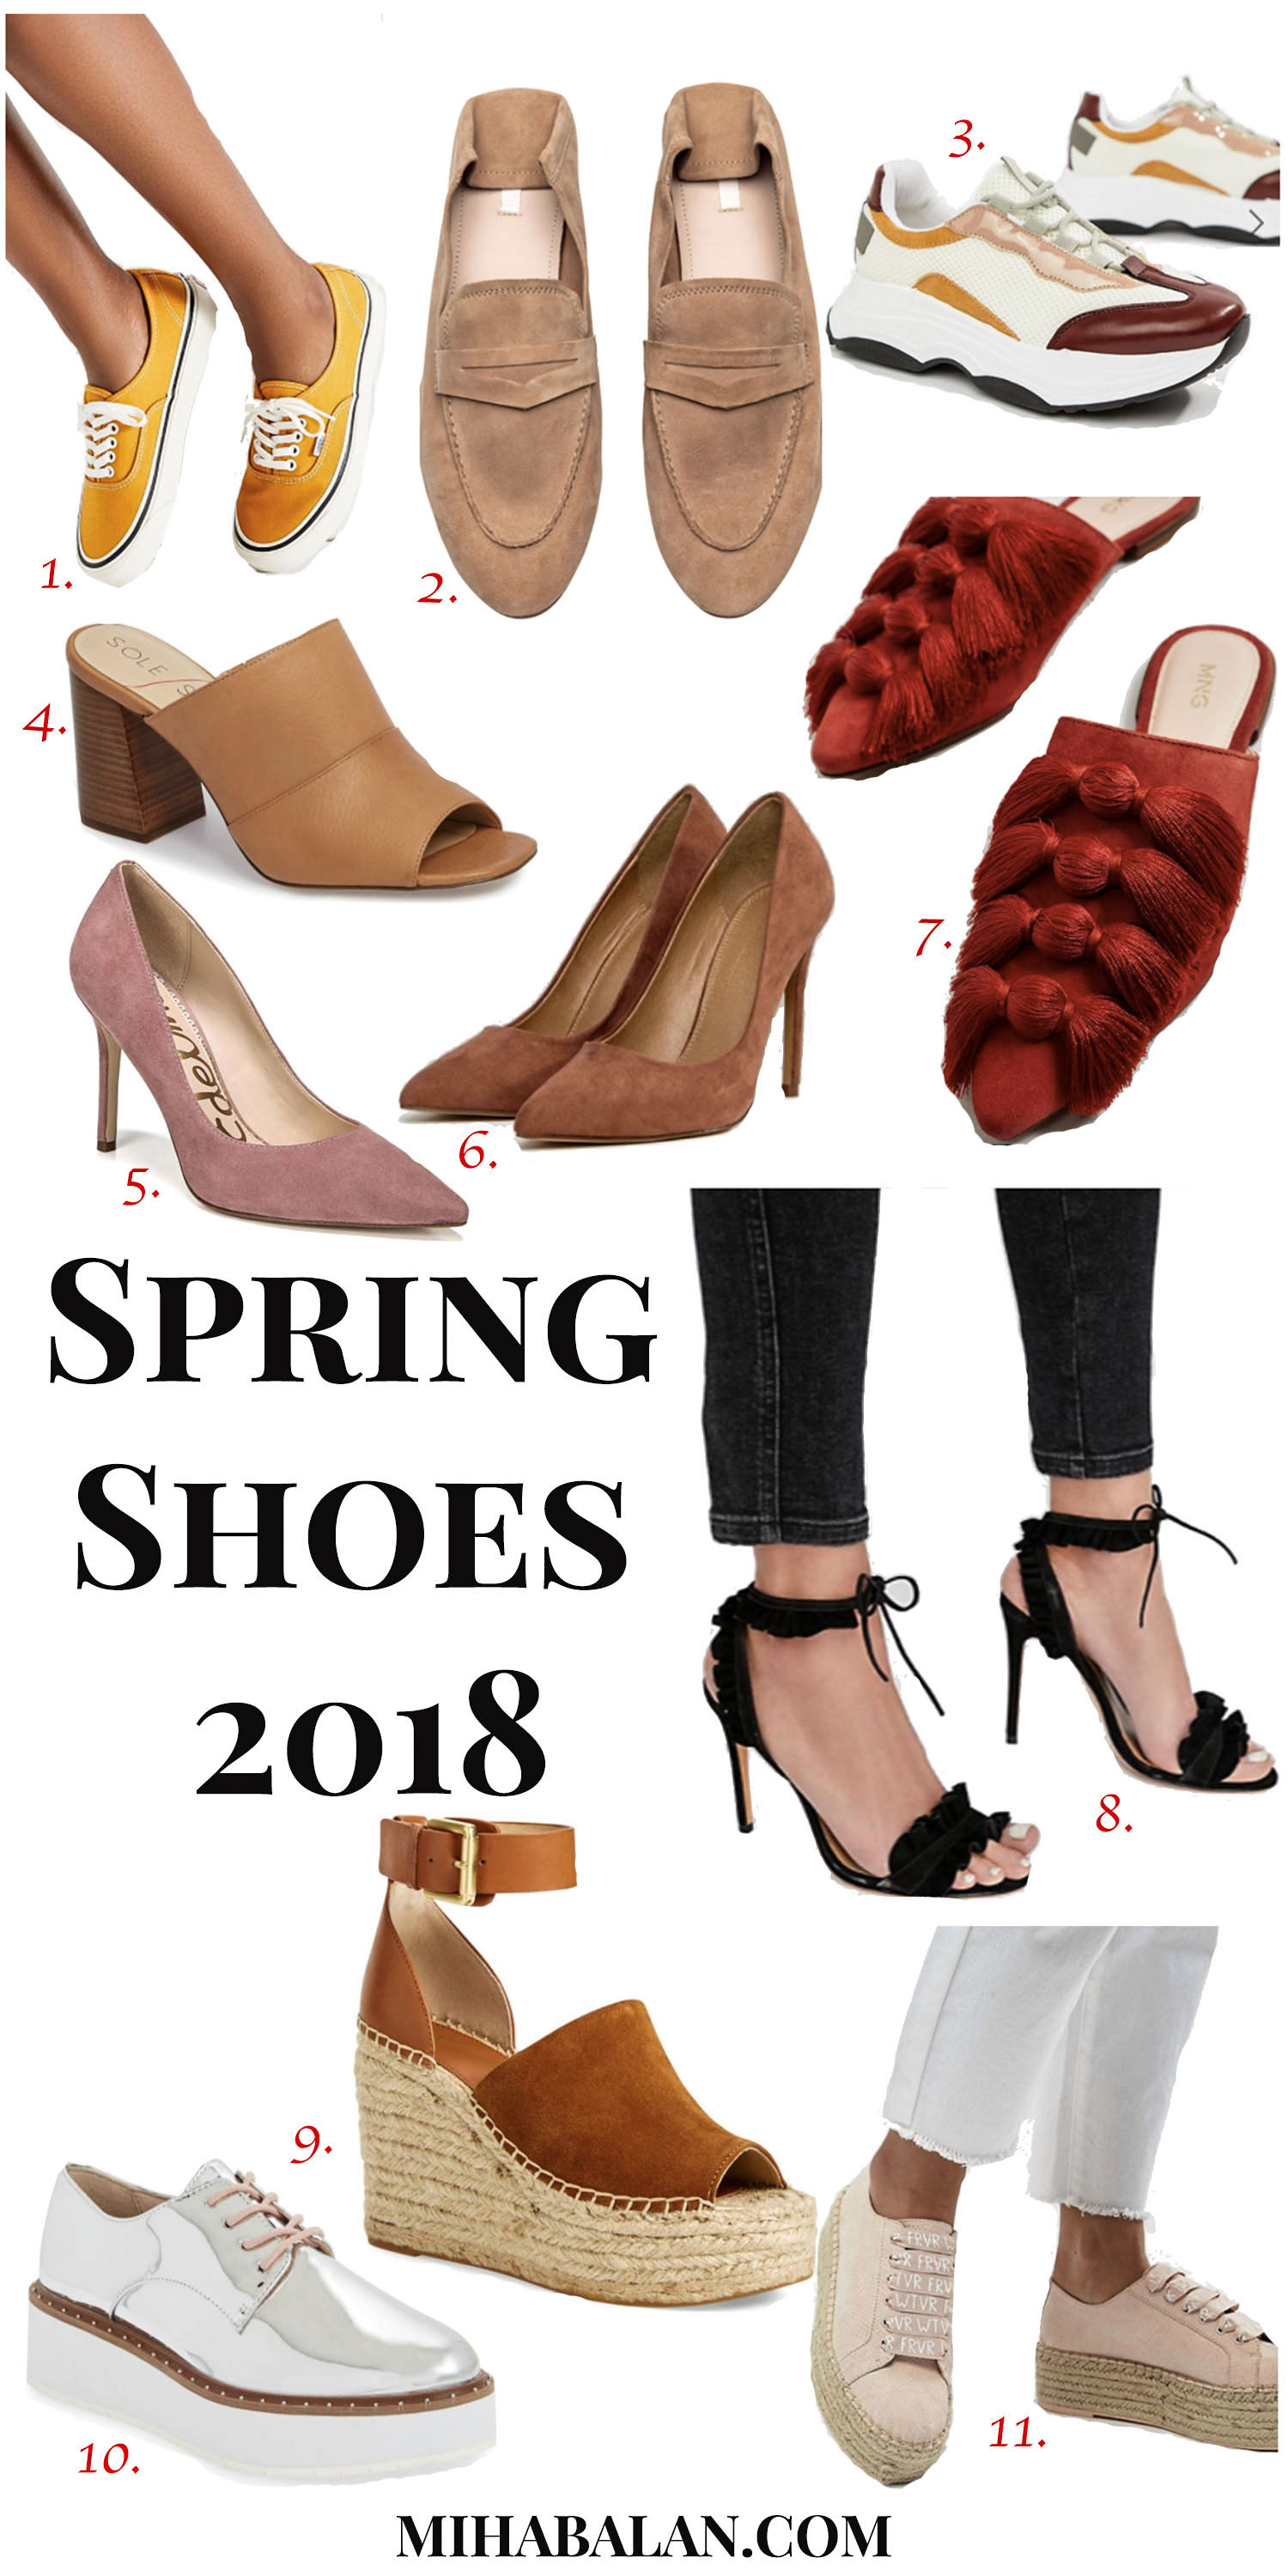 spring shoes 2018, spring espadrilles, spring mules, spring sneakers, shoe wear, office shoes wear